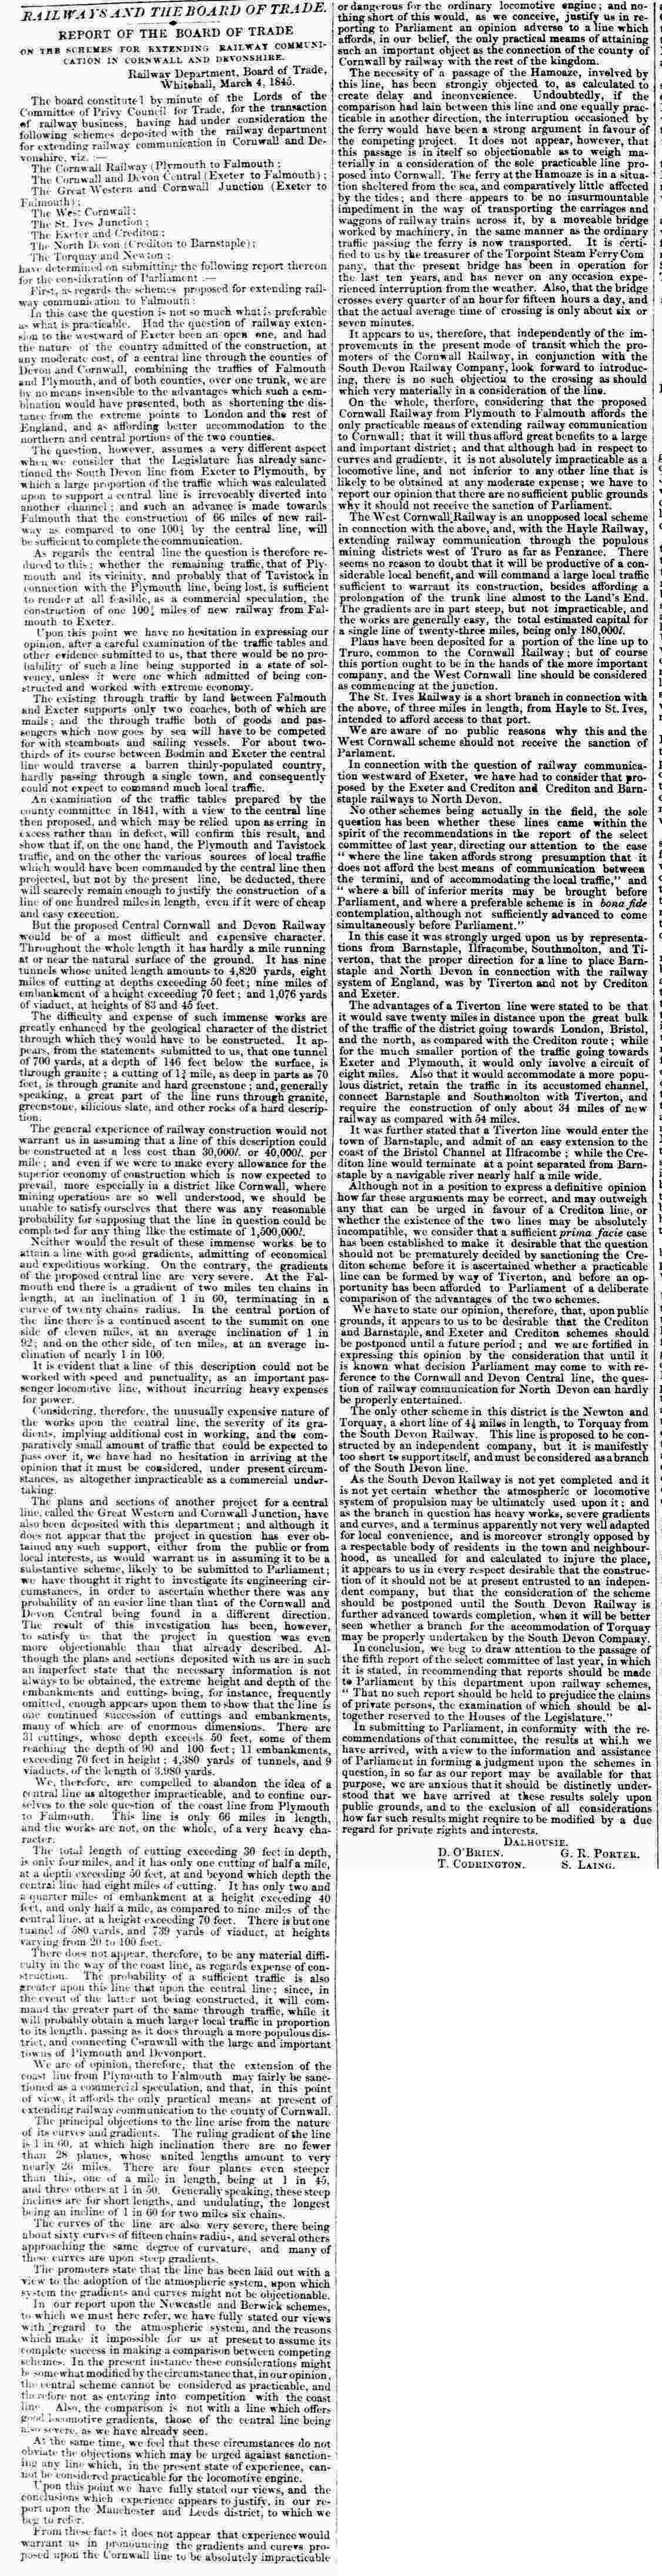 Board of Trade report 07 March 1845